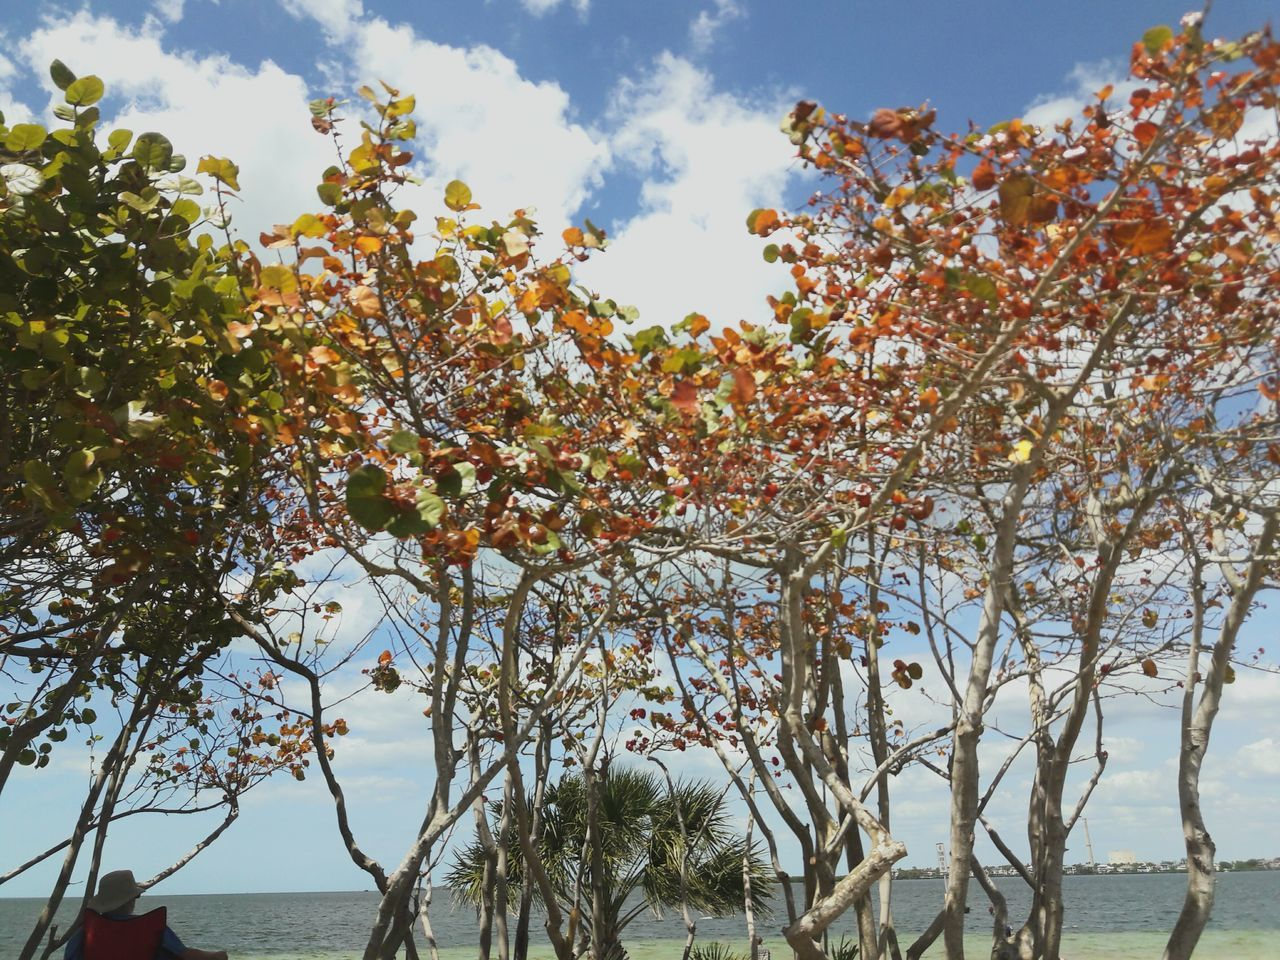 tree, beauty in nature, nature, branch, sky, growth, day, outdoors, scenics, tranquil scene, no people, tranquility, low angle view, foreground, sea, water, freshness